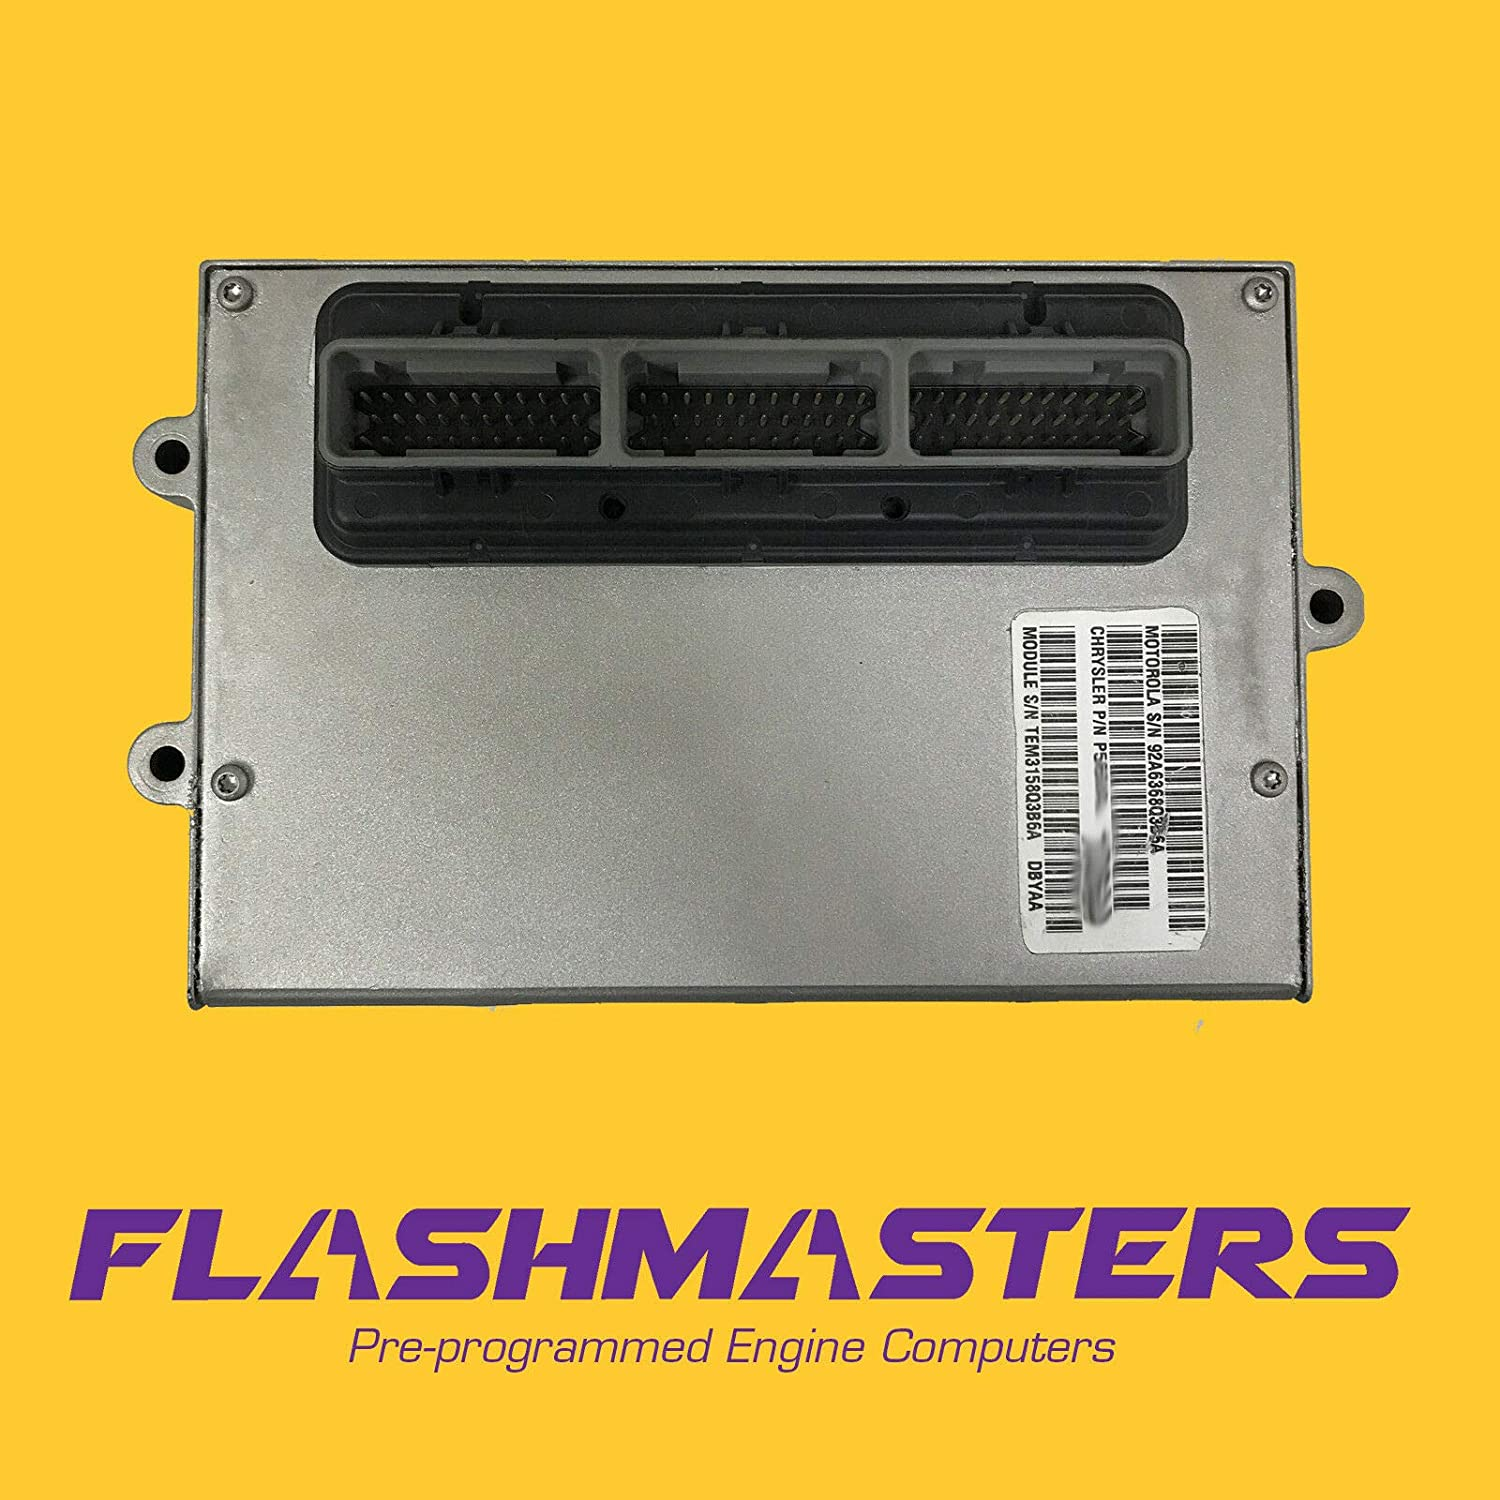 Flashmasters Very popular! Max 78% OFF 2004 Grand Compatible with Computer Cherokee 56 4.7